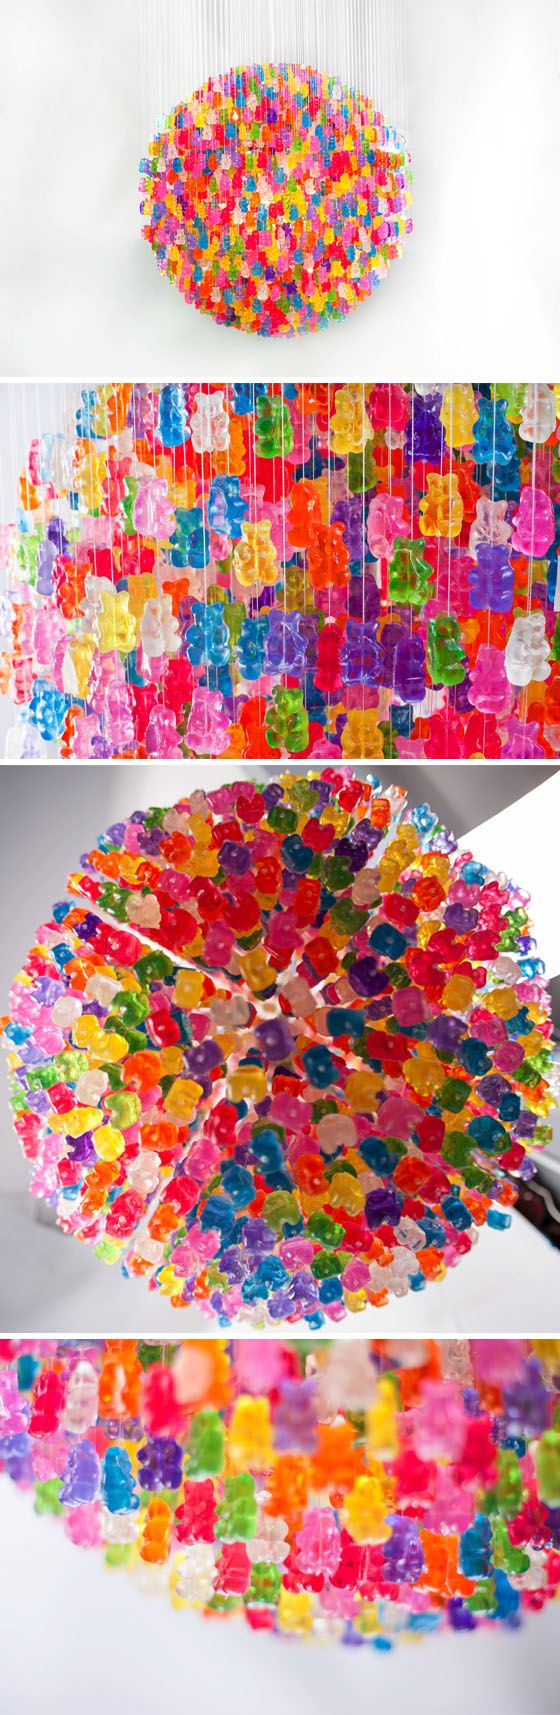 The candelier by kevin champeny made out of 3000 acrylic gummy the candelier by kevin champeny made out of 3000 acrylic gummy bears neat arubaitofo Image collections